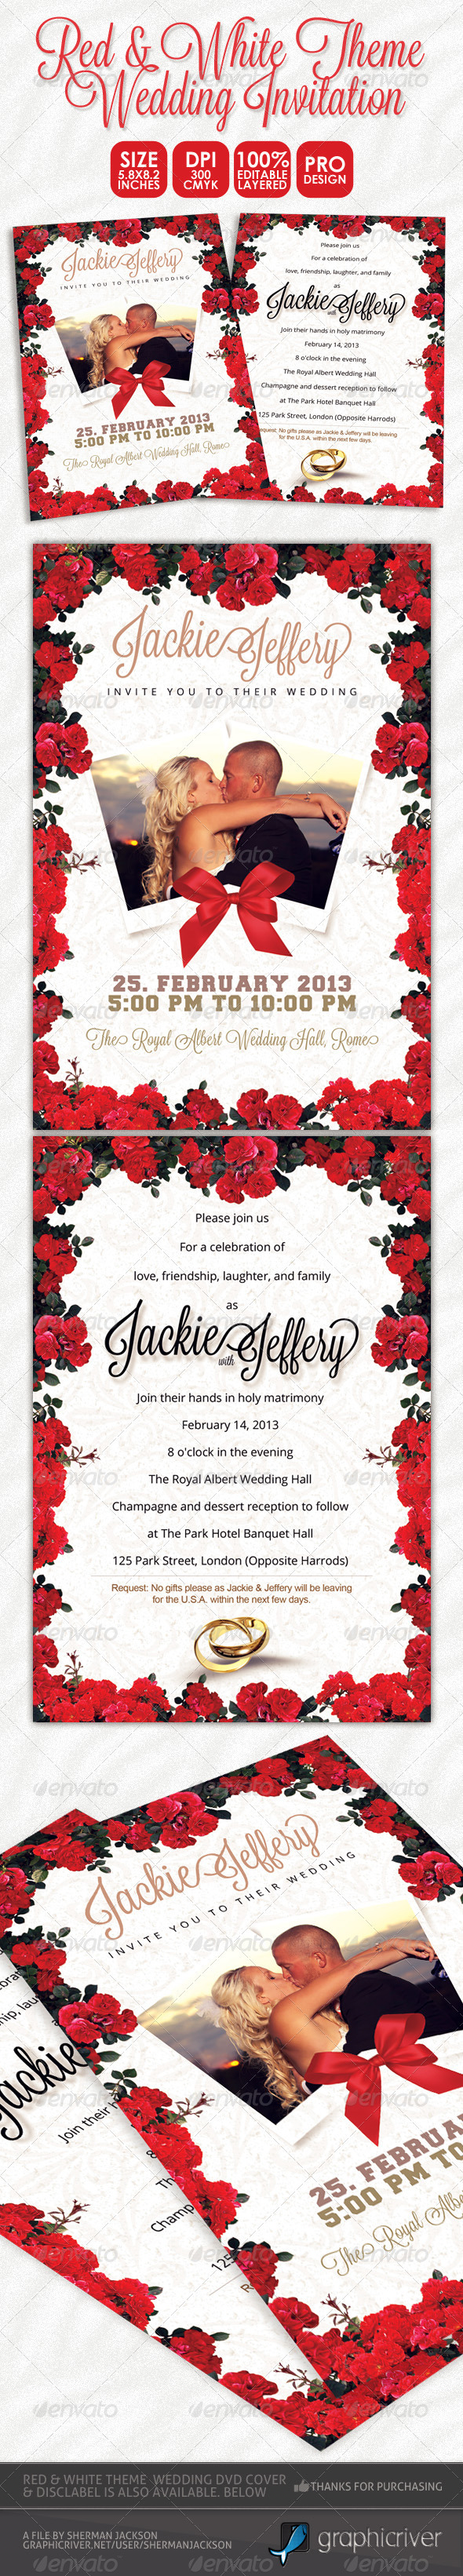 Red & White Theme Wedding Invitation Card - Weddings Cards & Invites